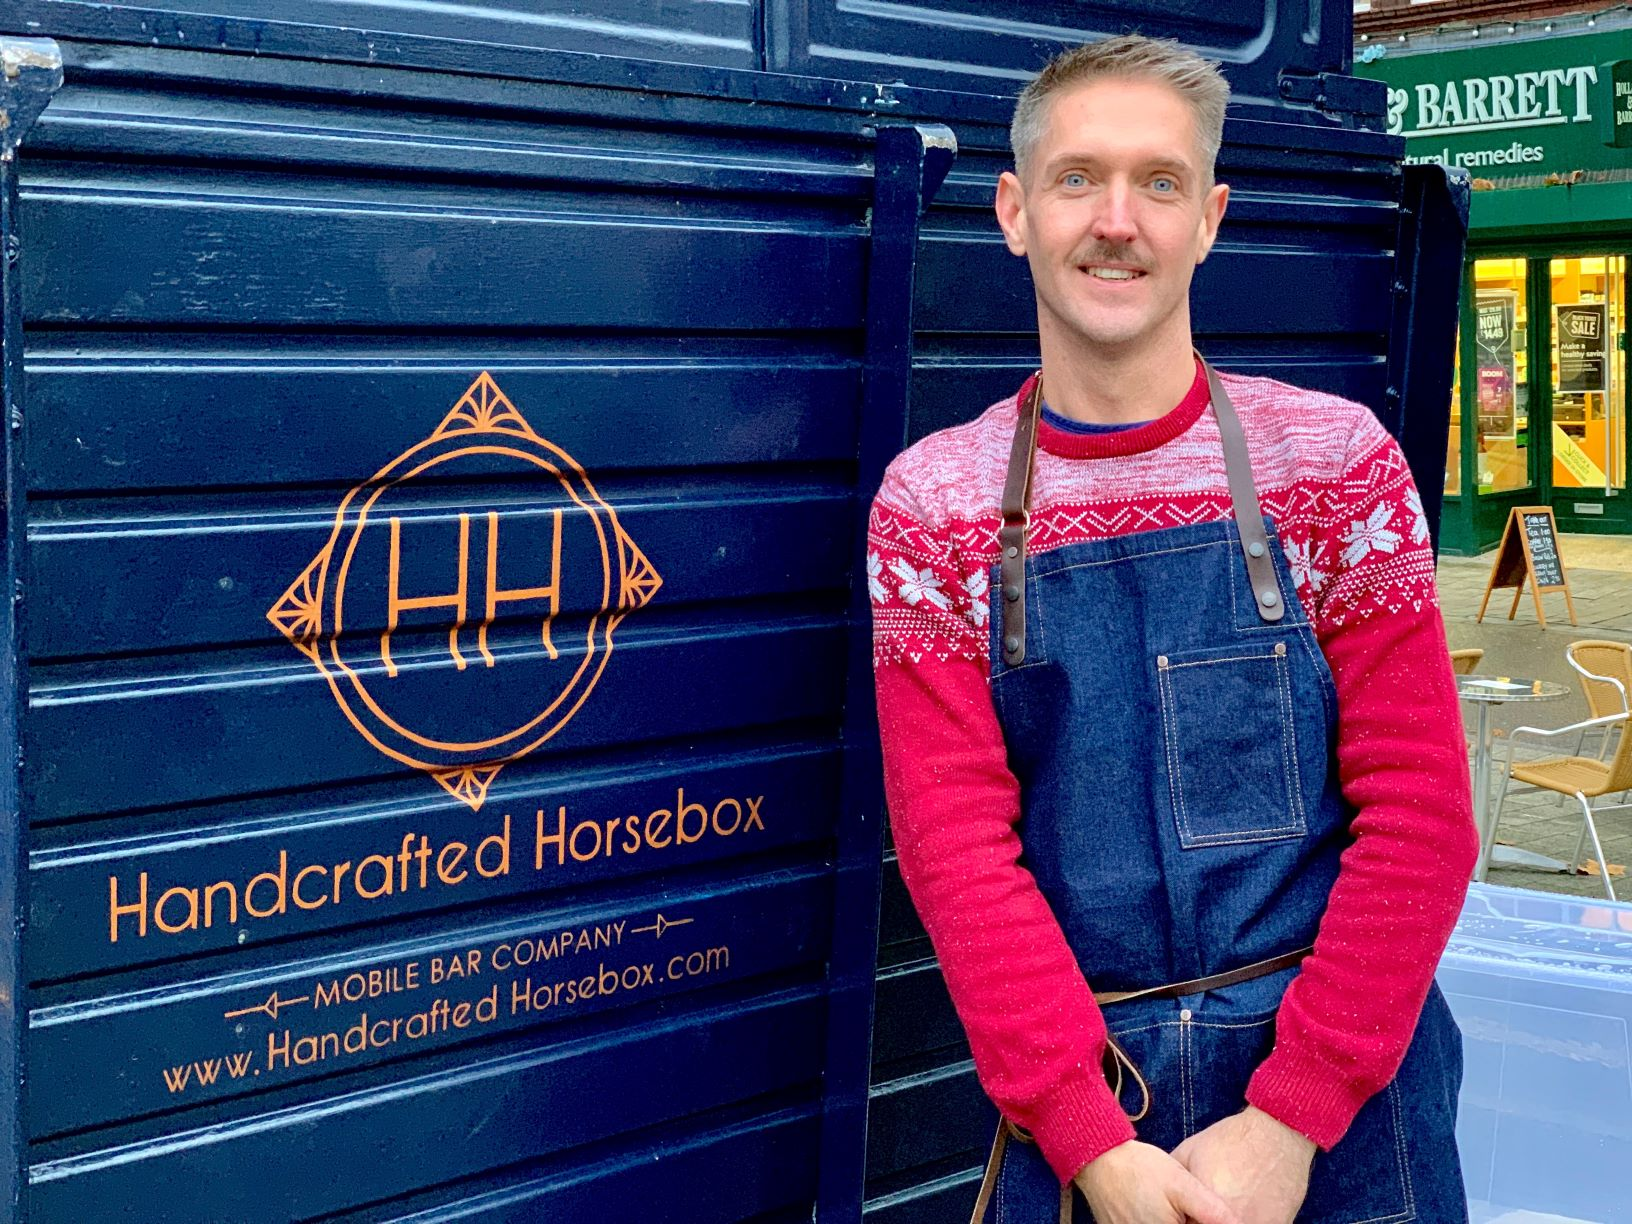 Jon - 'The Boss', expert in all things alcoholic and creator of the Handcrafted Horsebox. Jon has a wealth of experience in both hospitality and marketing and has a well-earned reputation for getting the party started, if there is a drink worth drinking he will know how to pour it!